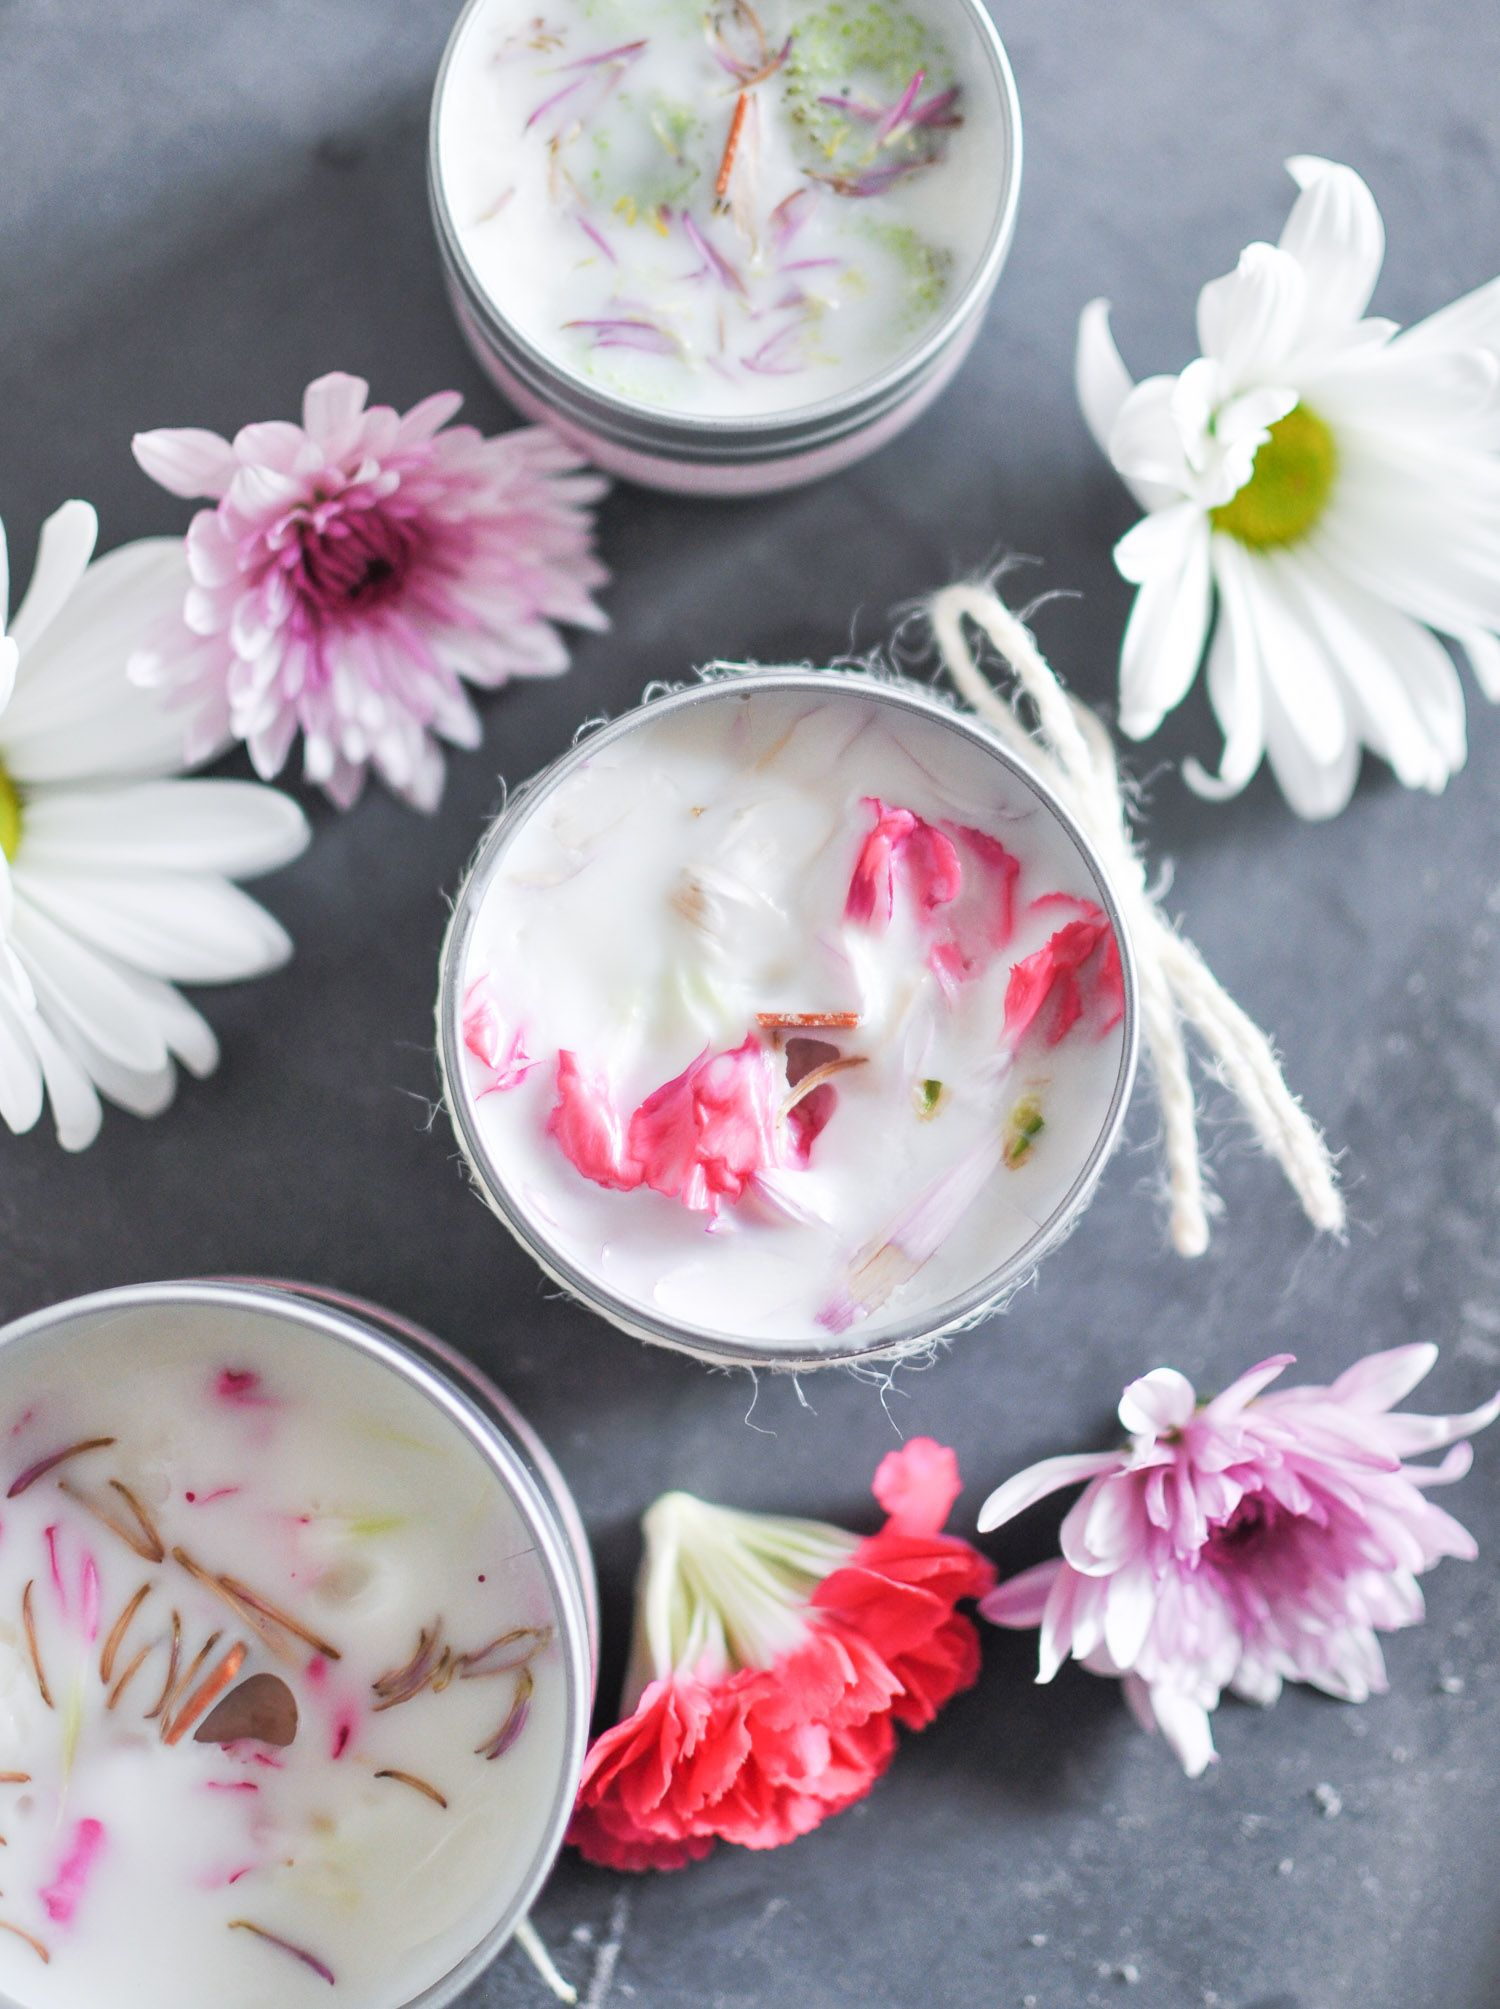 How to Make DIY Floral Candles For Any Season or Holiday